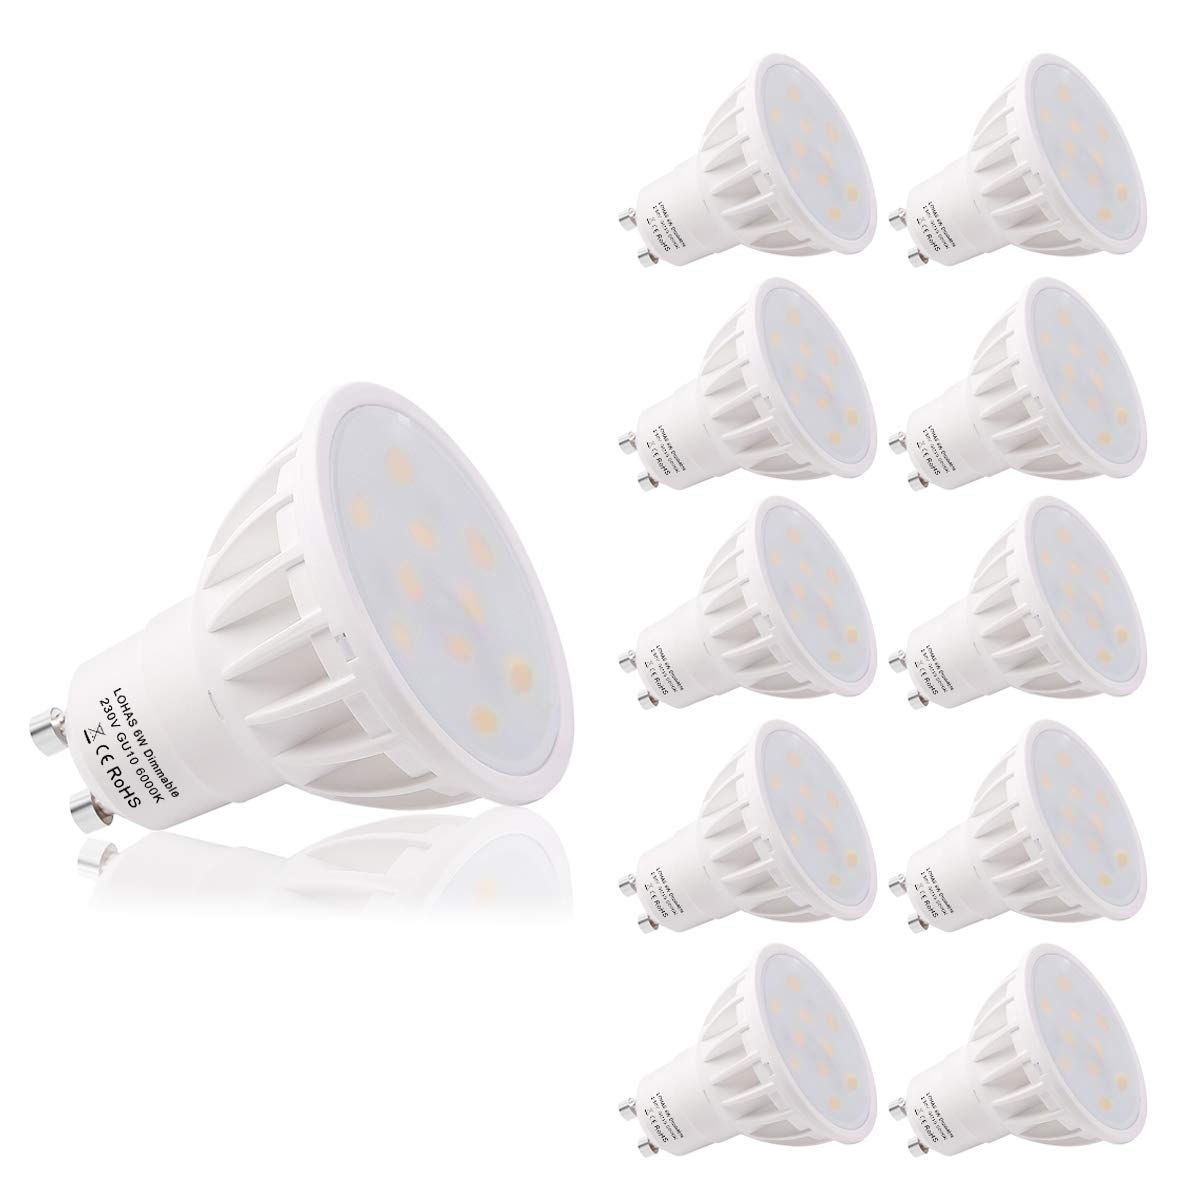 LOHAS GU10 6Watt LED Beautiful 3000K Warm White Colour 50Watt Replacement For Halogen Bulb With New Chip Technology With 1 Year Warranty, Pack of 10 Units, Non Dimmable GK-Lighting